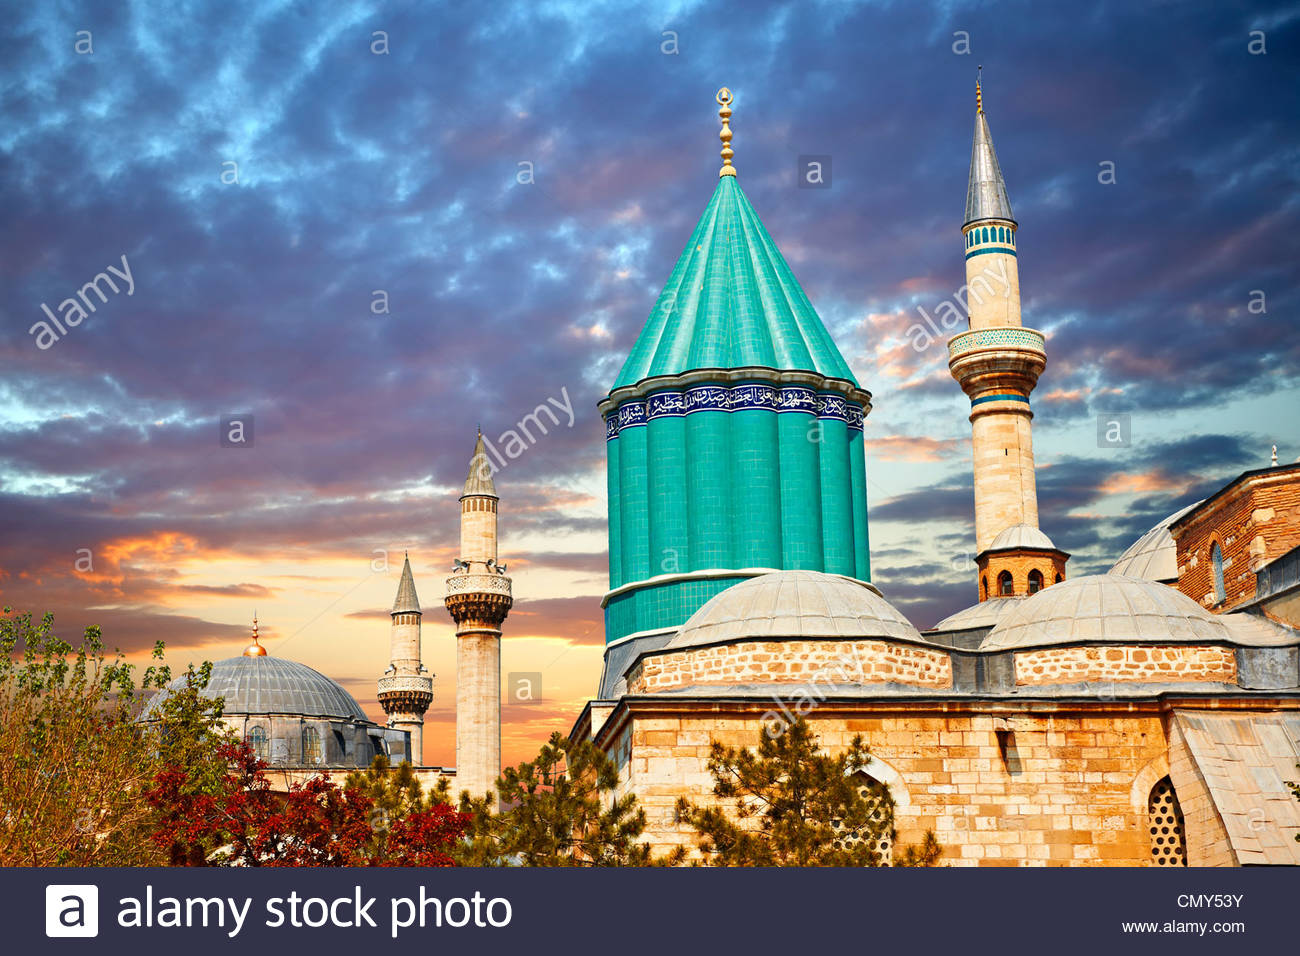 Dome of the Mevlâna museum, the mausoleum of Jalal ad-Din Muhammad Rumi, Konya Turkey - Stock Image